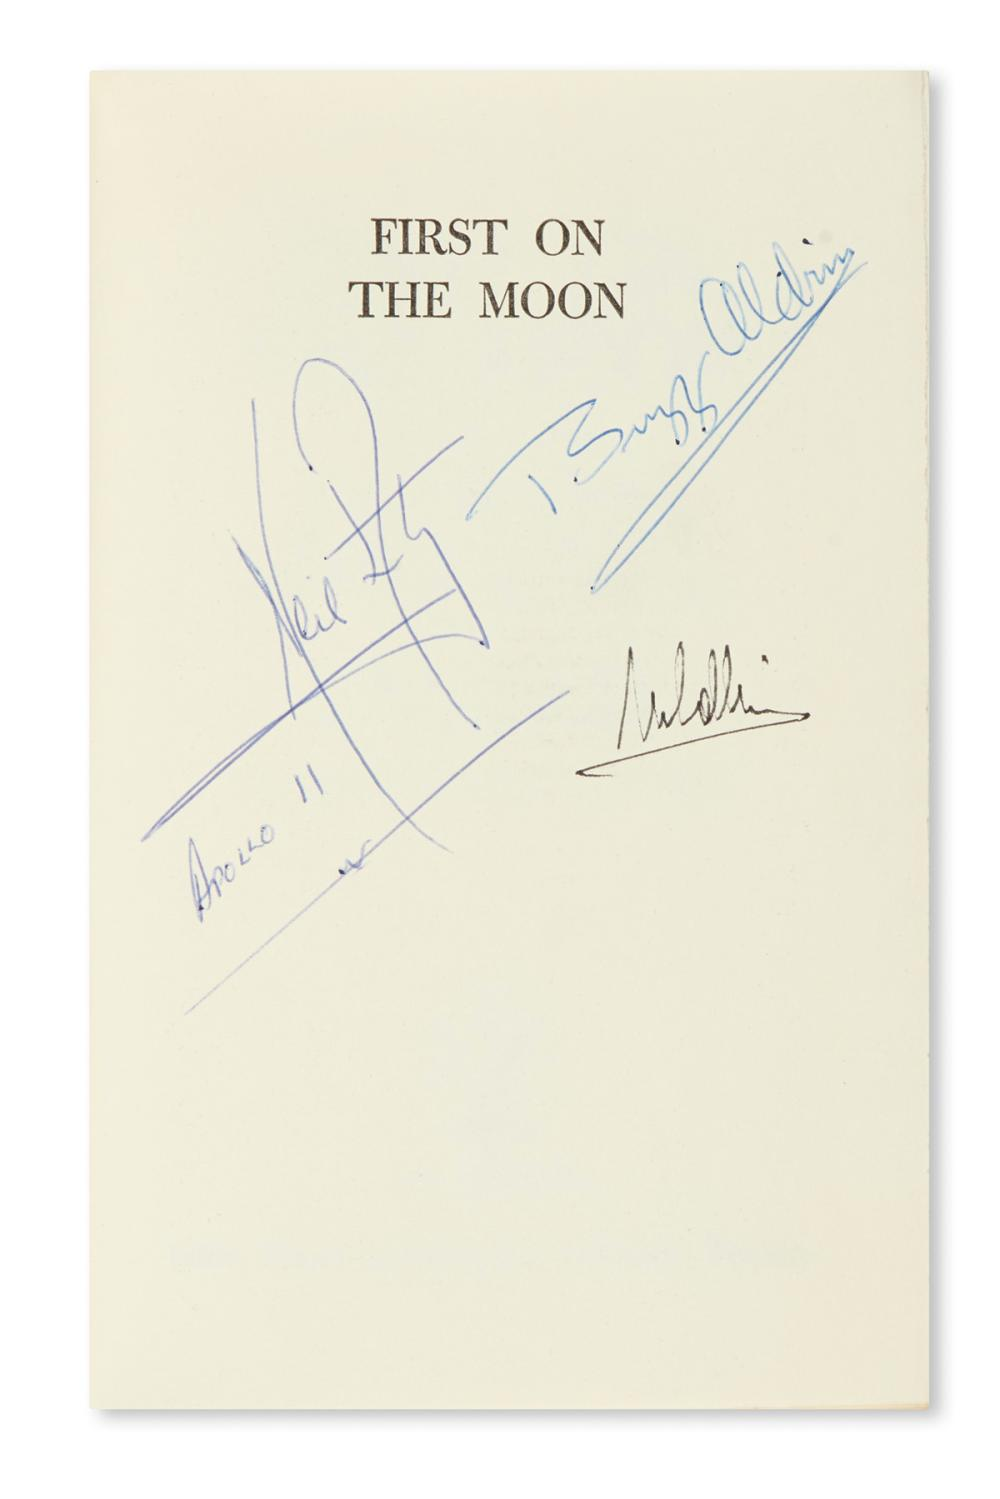 "(ASTRONAUTS--APOLLO 11.) Armstrong, Collins, and Aldrin, Jr. First on the Moon. Signed by the authors, on half-title (""Neil Armst'g,"""